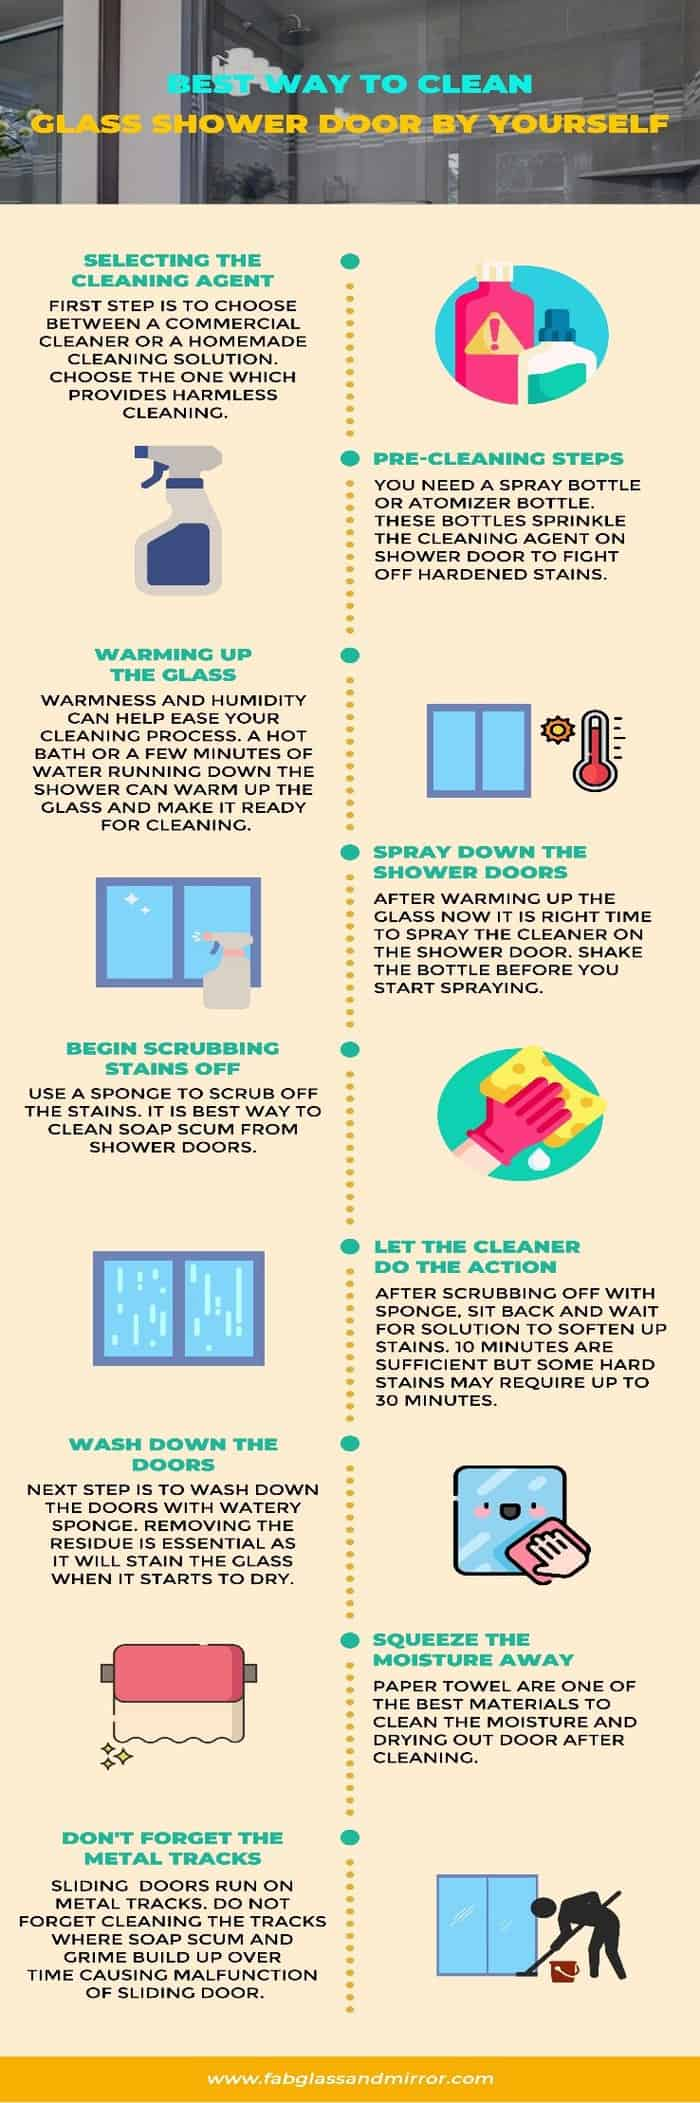 Quick and Safe Hacks to Clean Glass Shower Doors